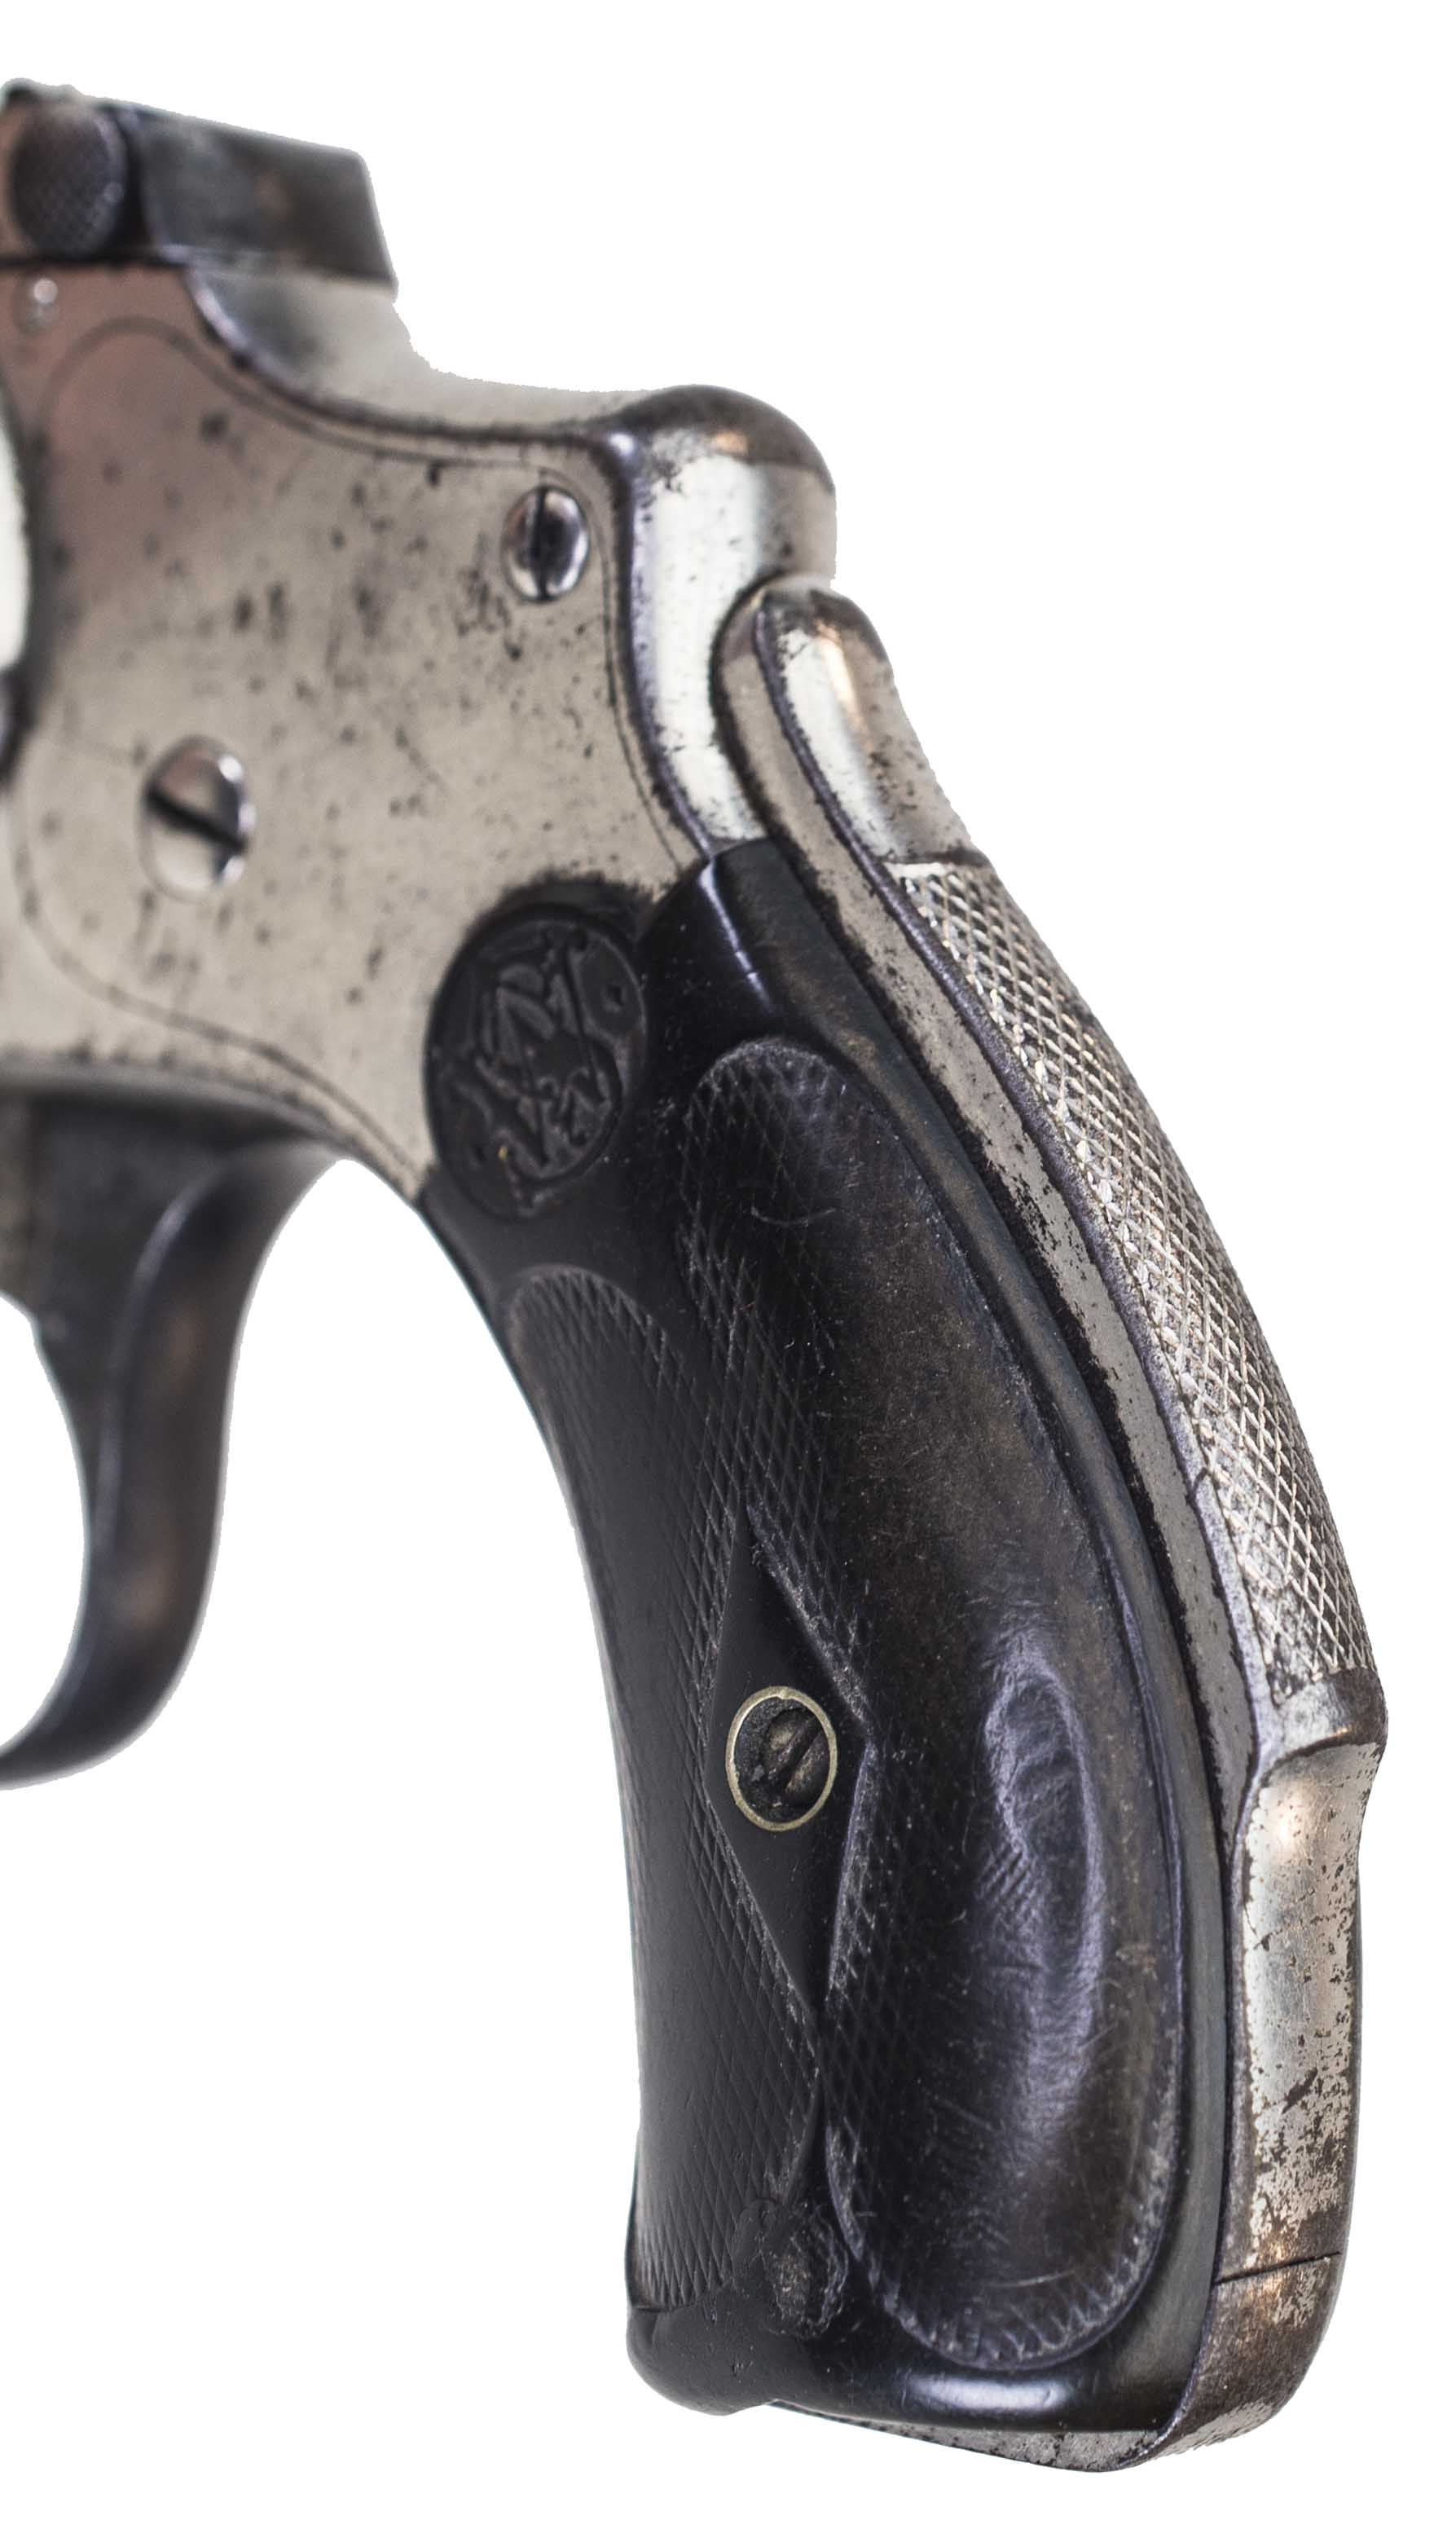 SMITH & WESSON SAFETY HAMMERLESS (Auction ID: 6023165, End